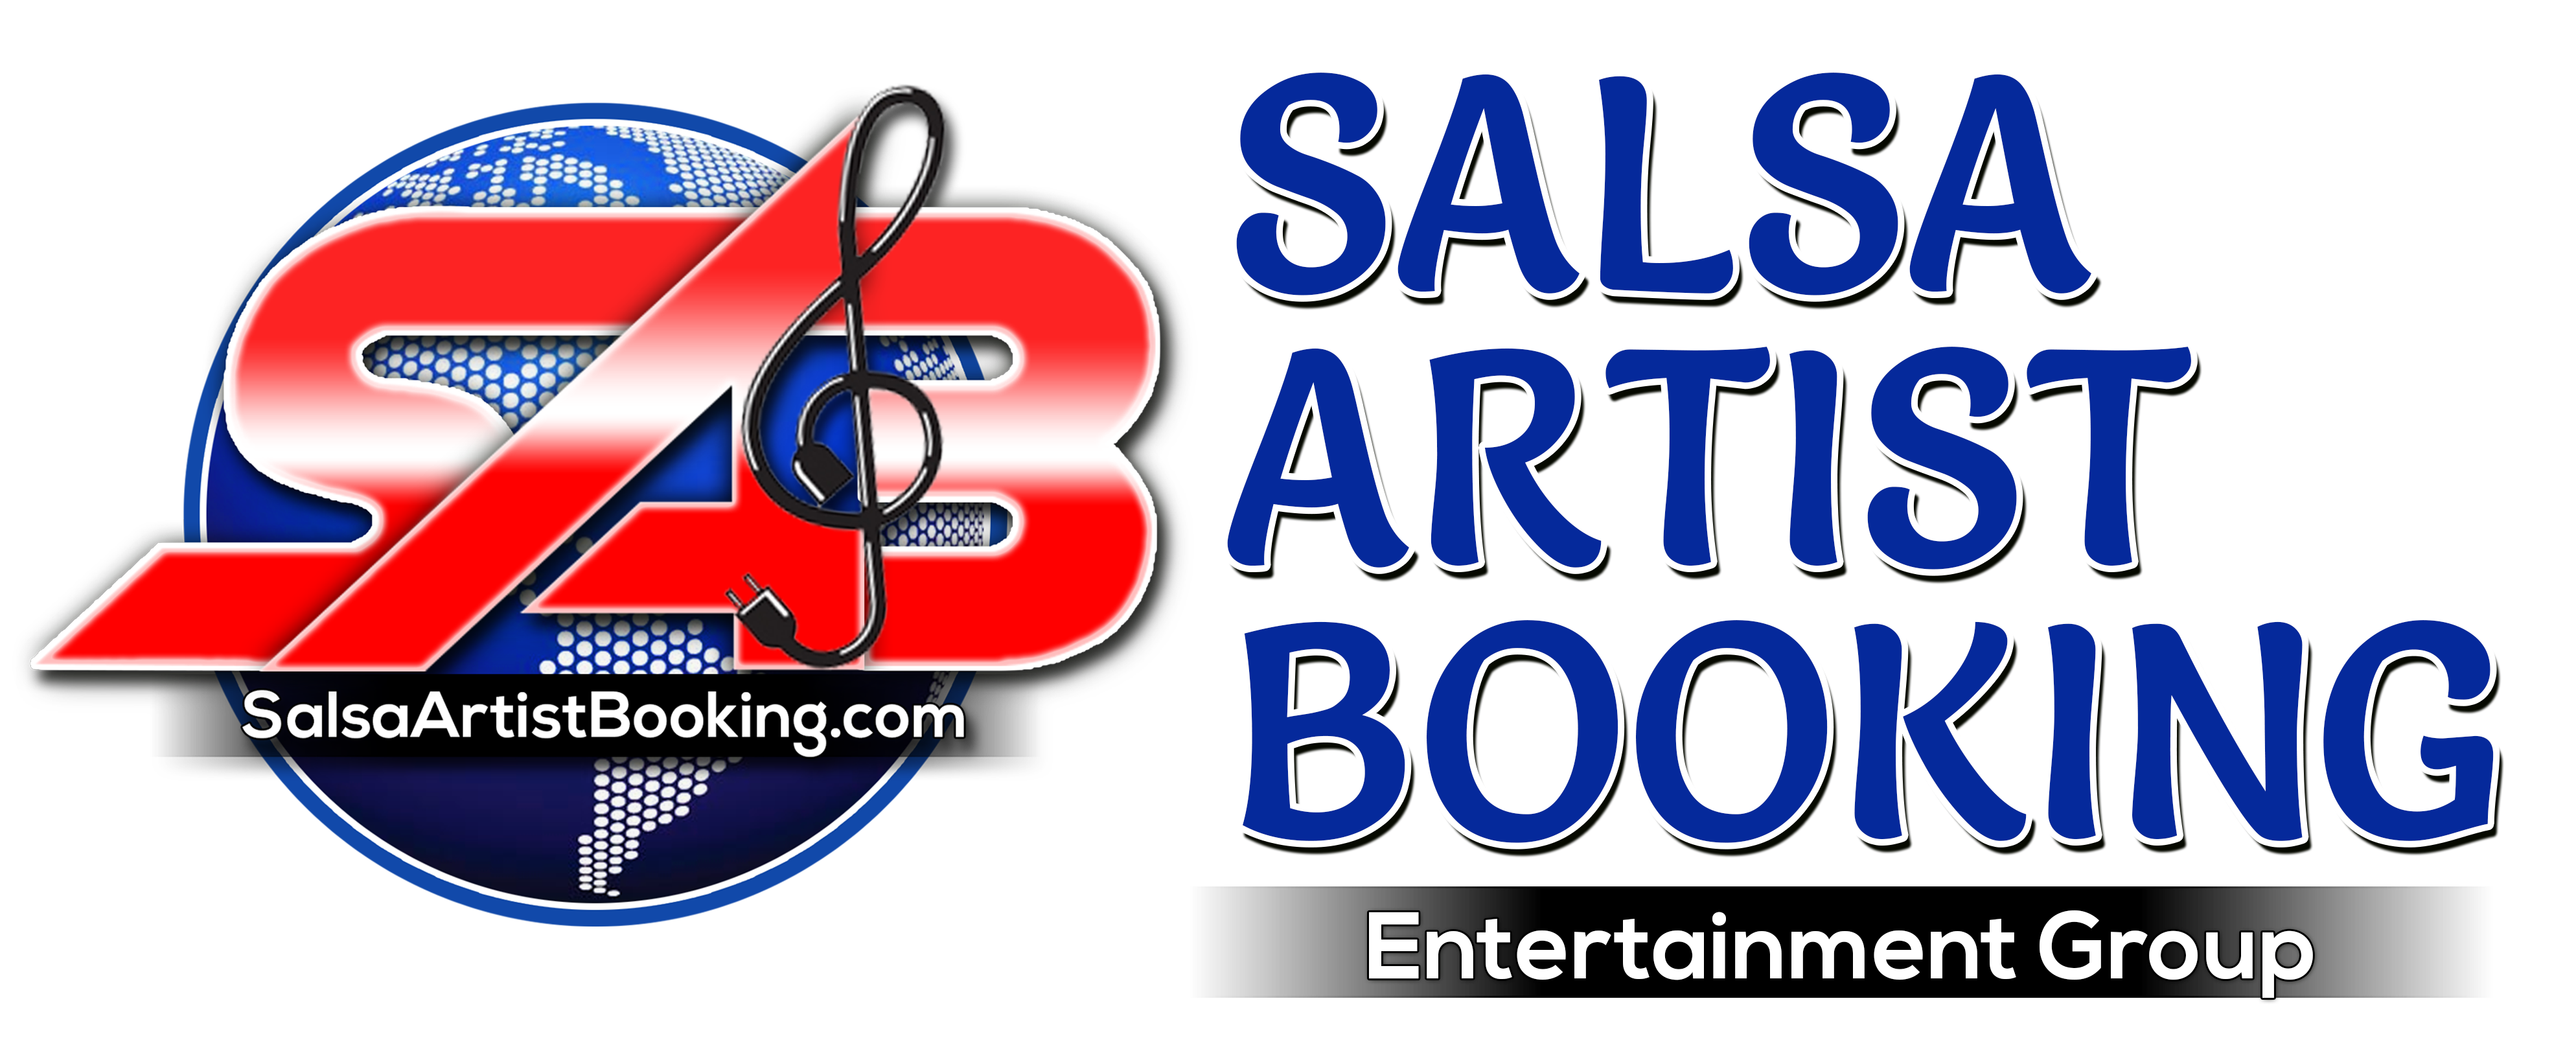 Salsa Artist Booking - Horizontal